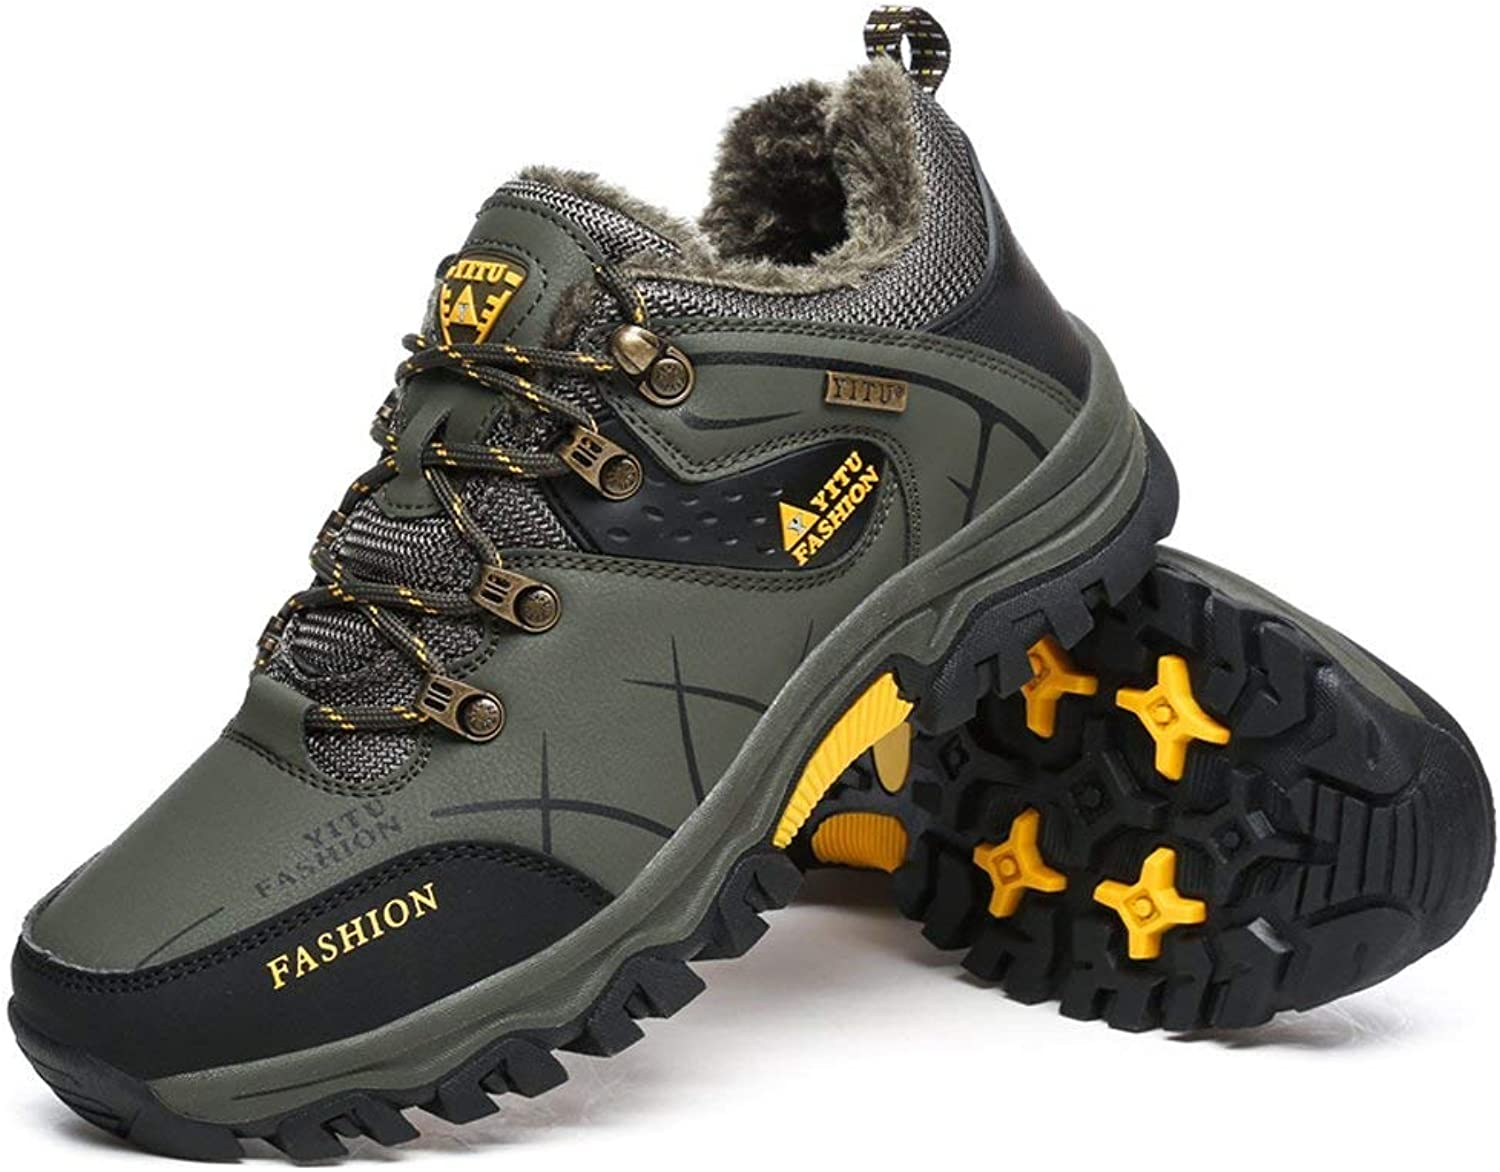 ALING Hiking Boots Mens Trail Mountain shoes Walking Travel Outdoor Sneaker Plus